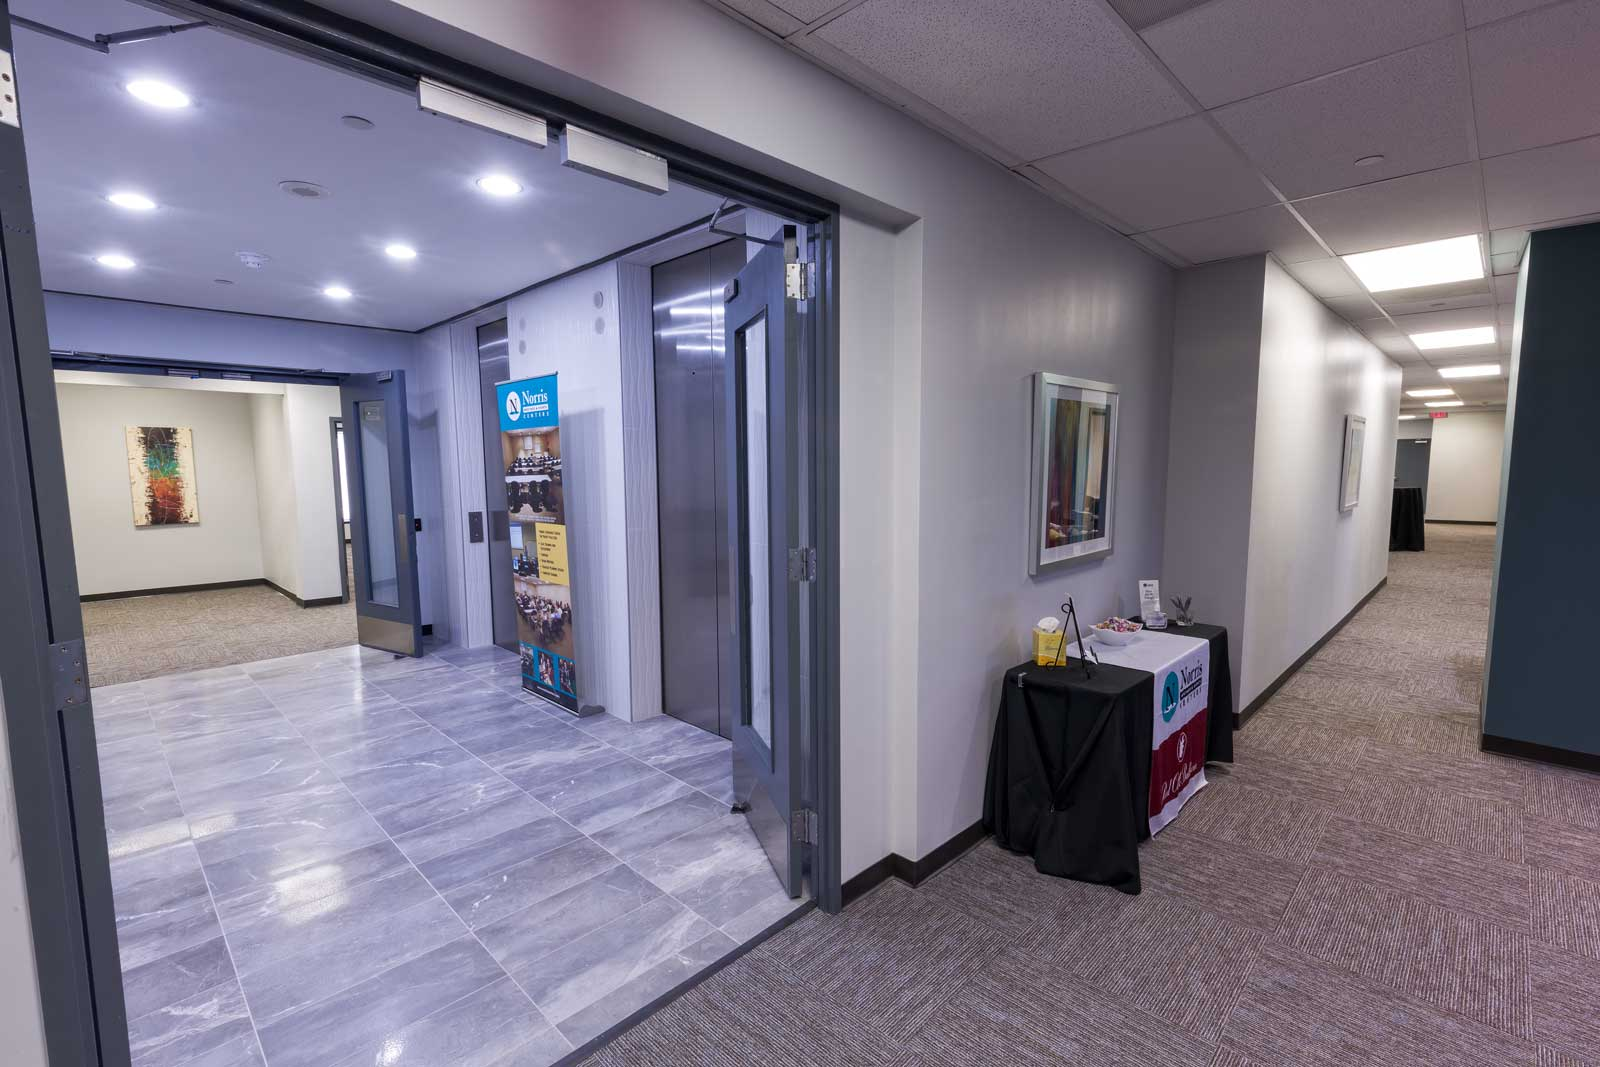 Norris Centers Dallas, View of Elevators and Hallway